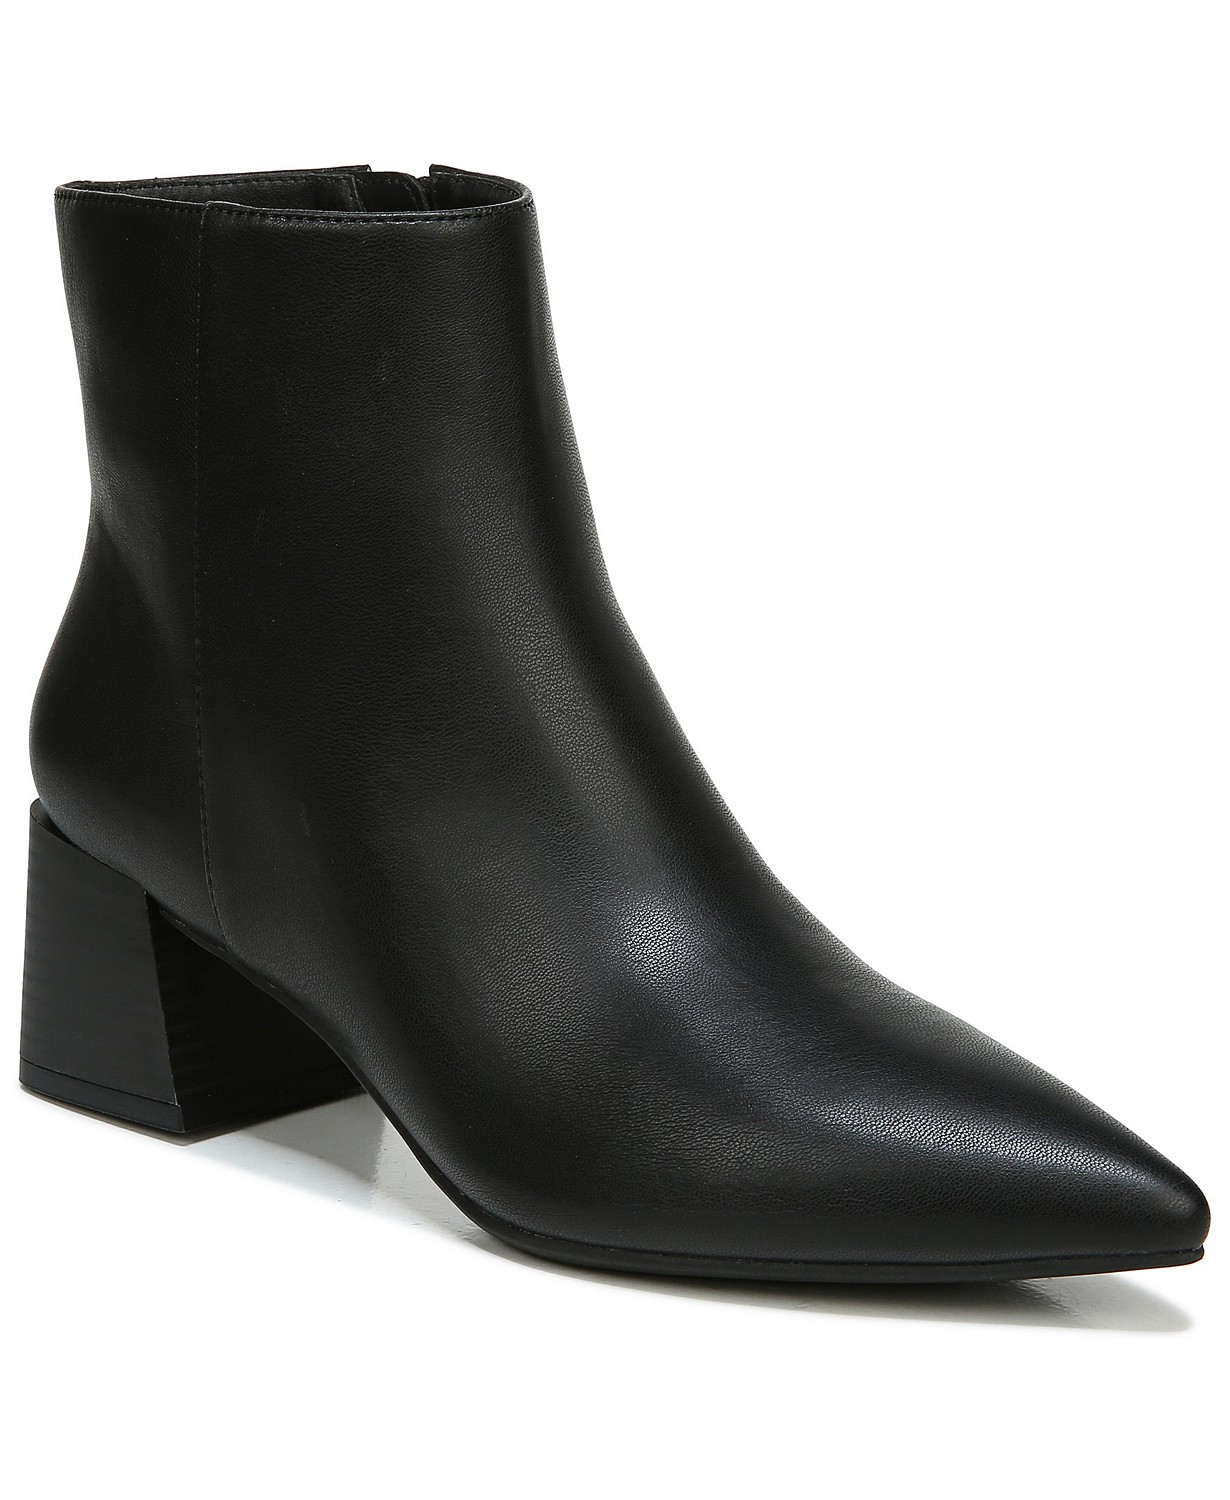 Women's Brrett Pointed-Toe Booties $14.96 (81% off)